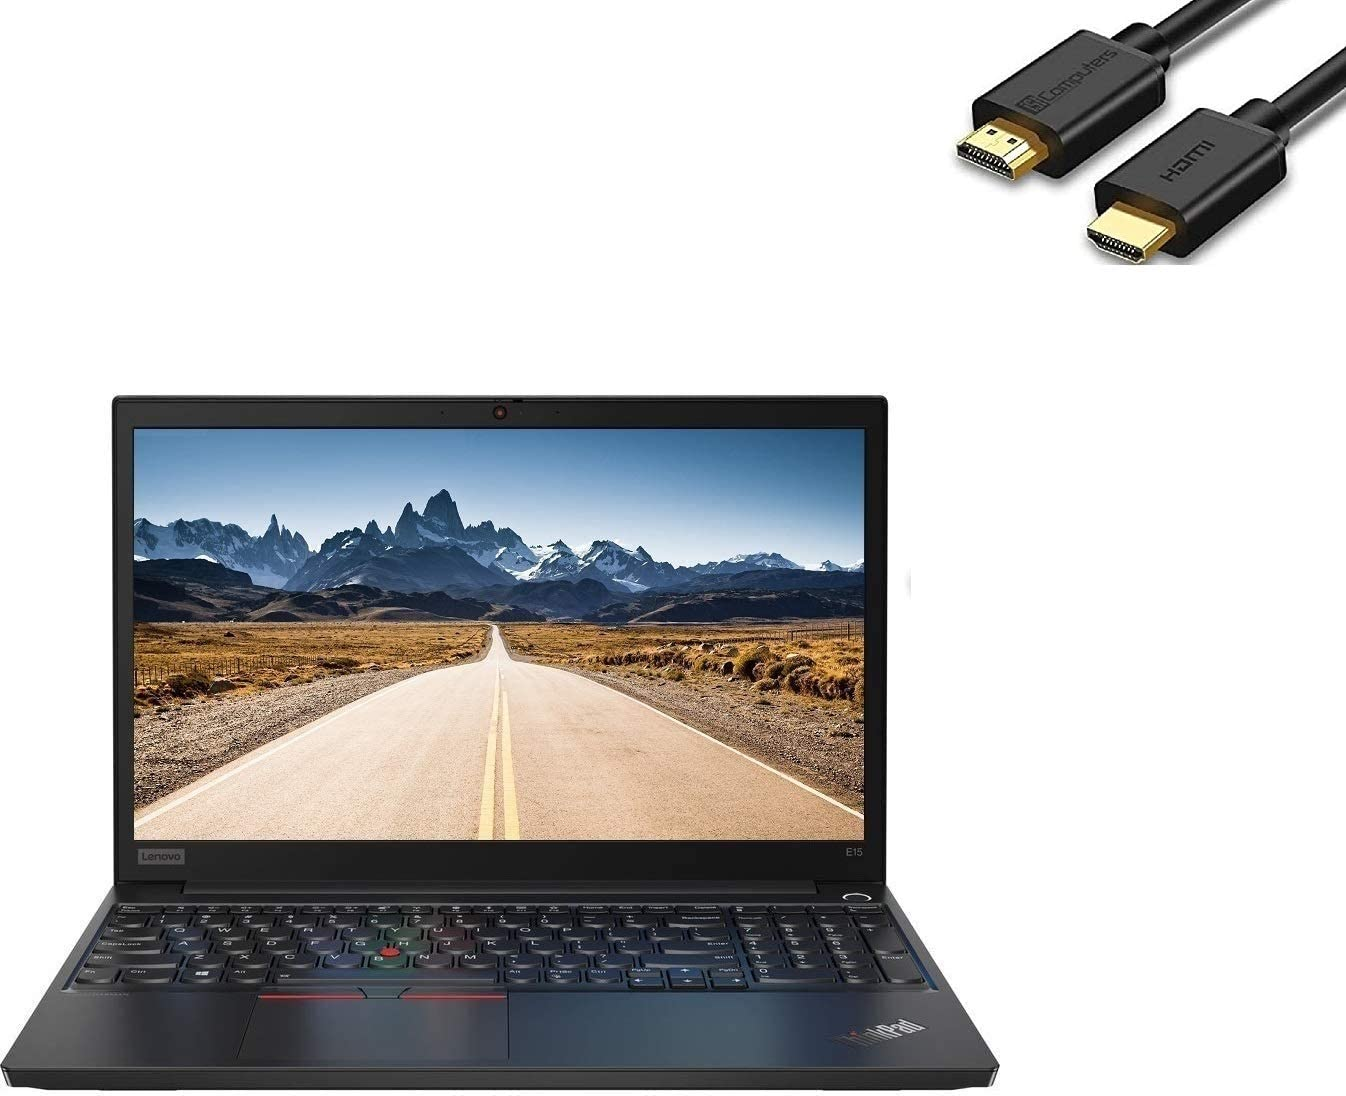 9 Best 32GB RAM Laptops in 2021 [Expert Recommendations]